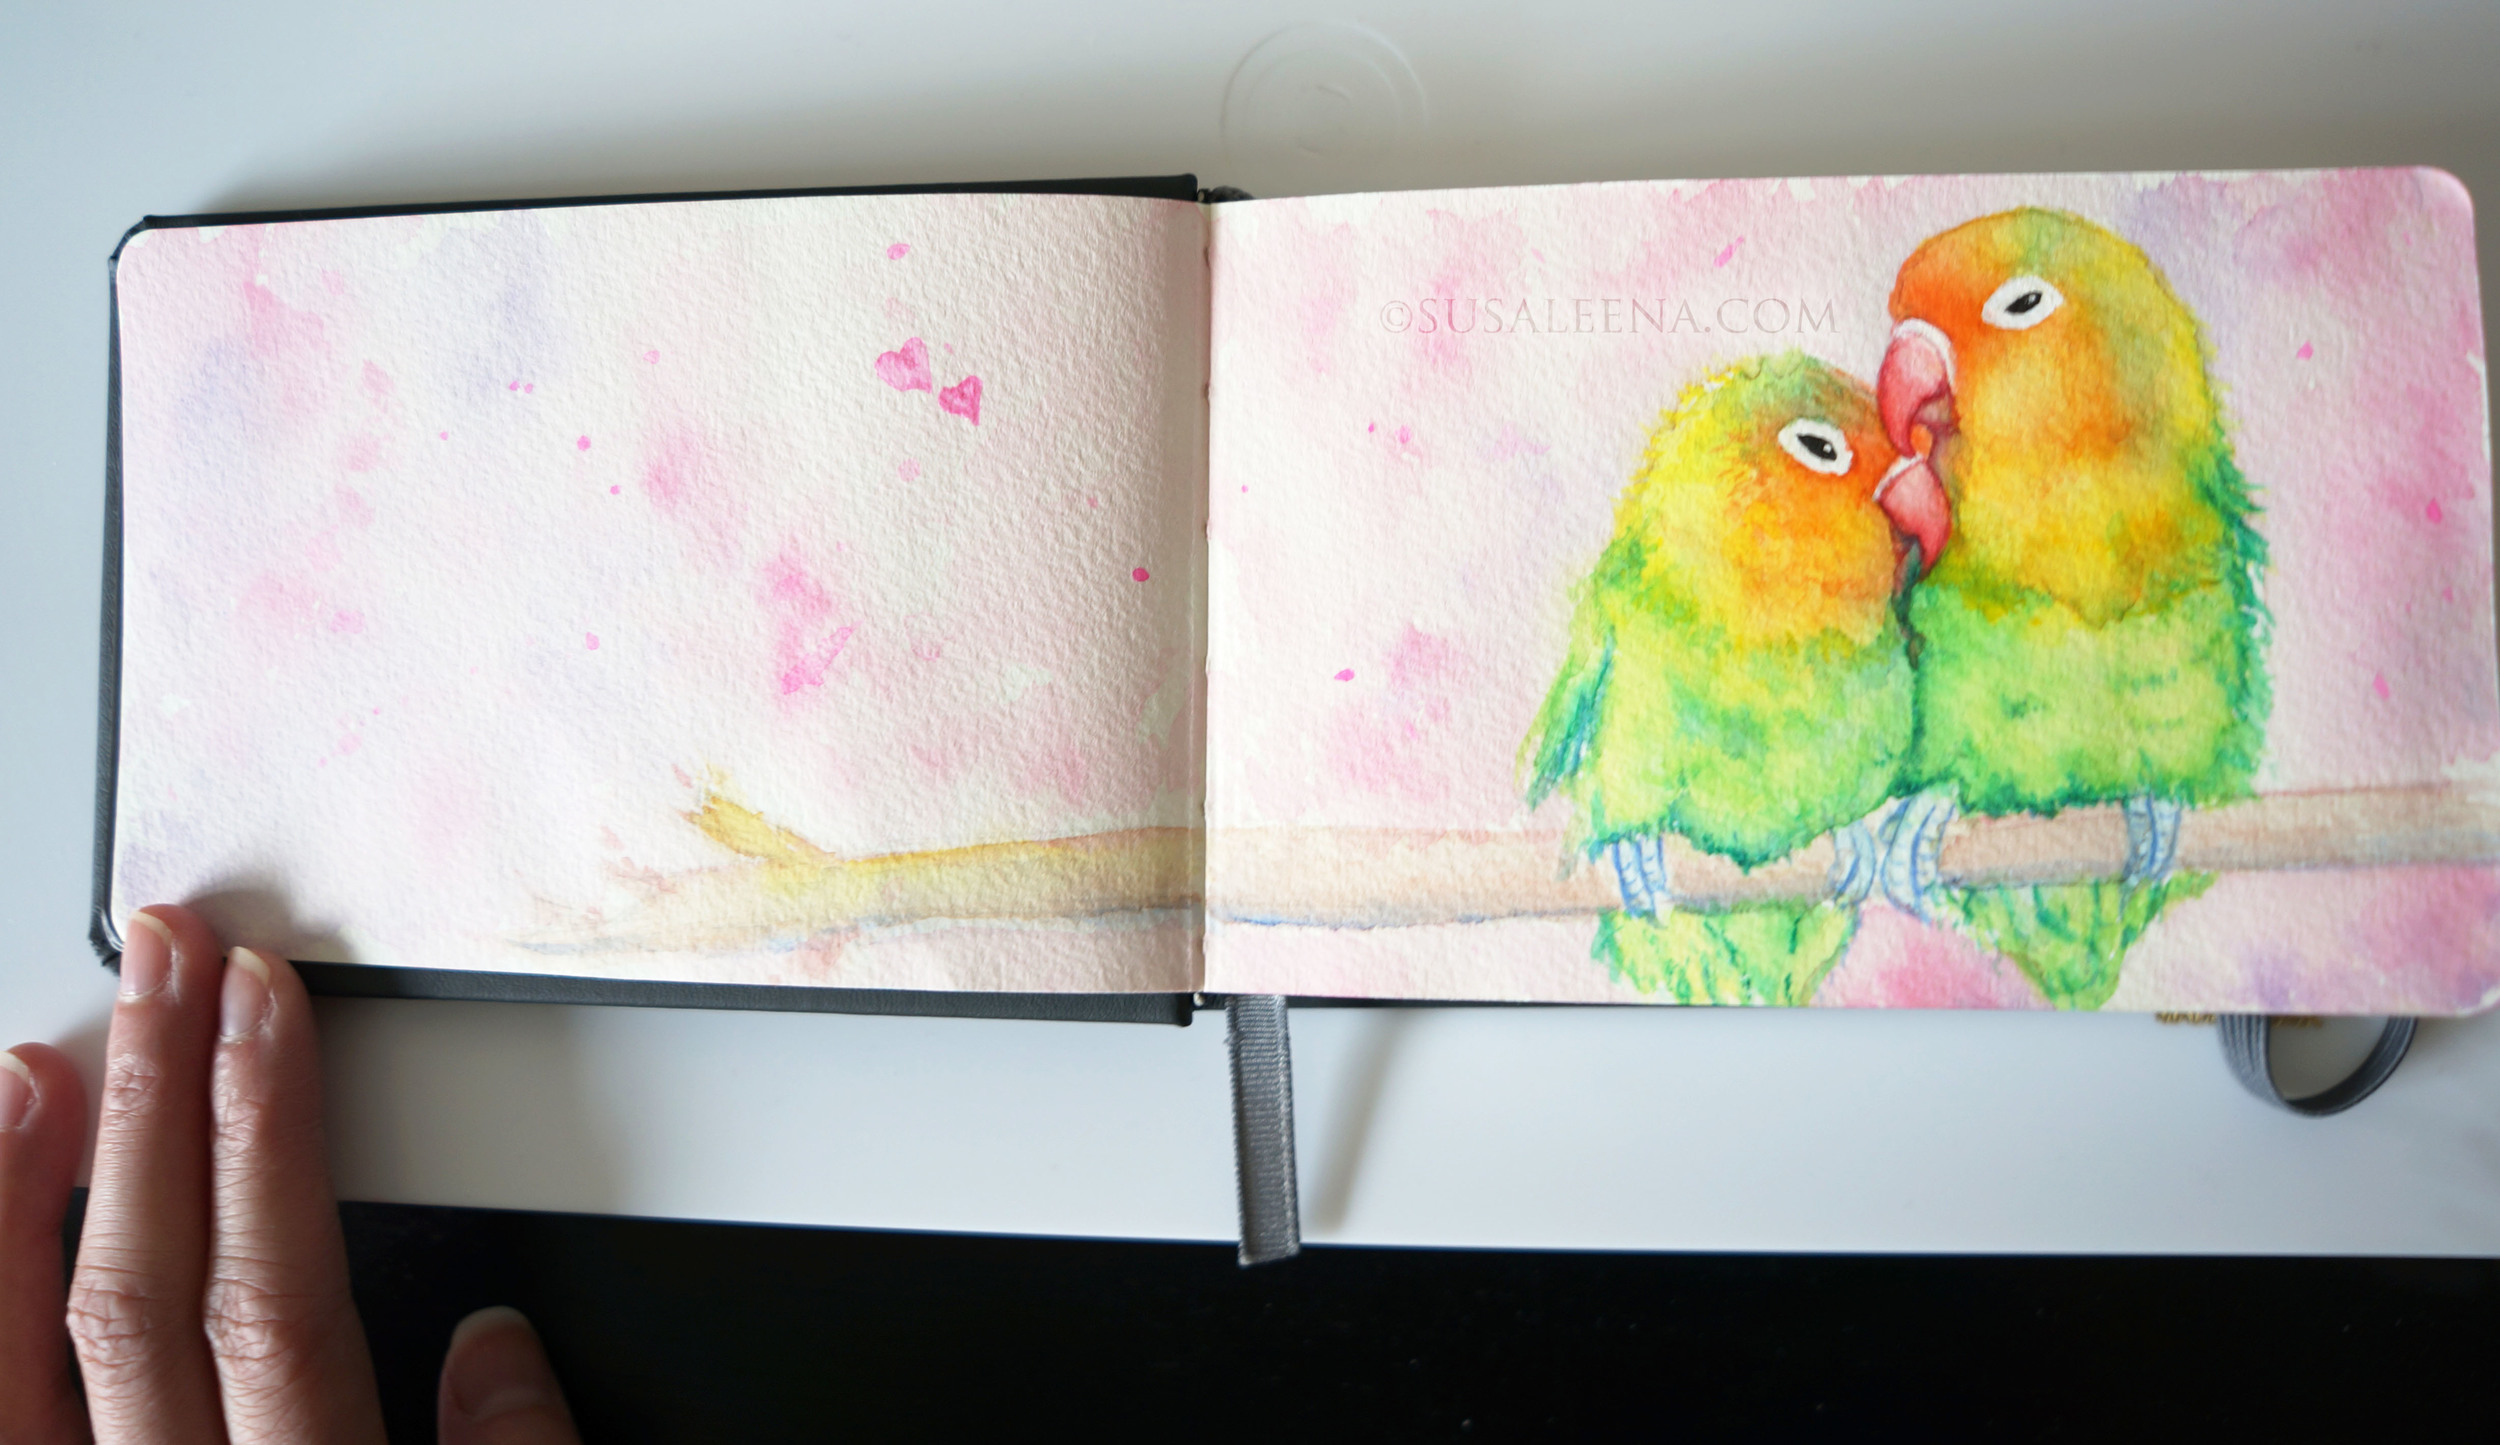 The background is much lighter with better contrast against the lovebirds.